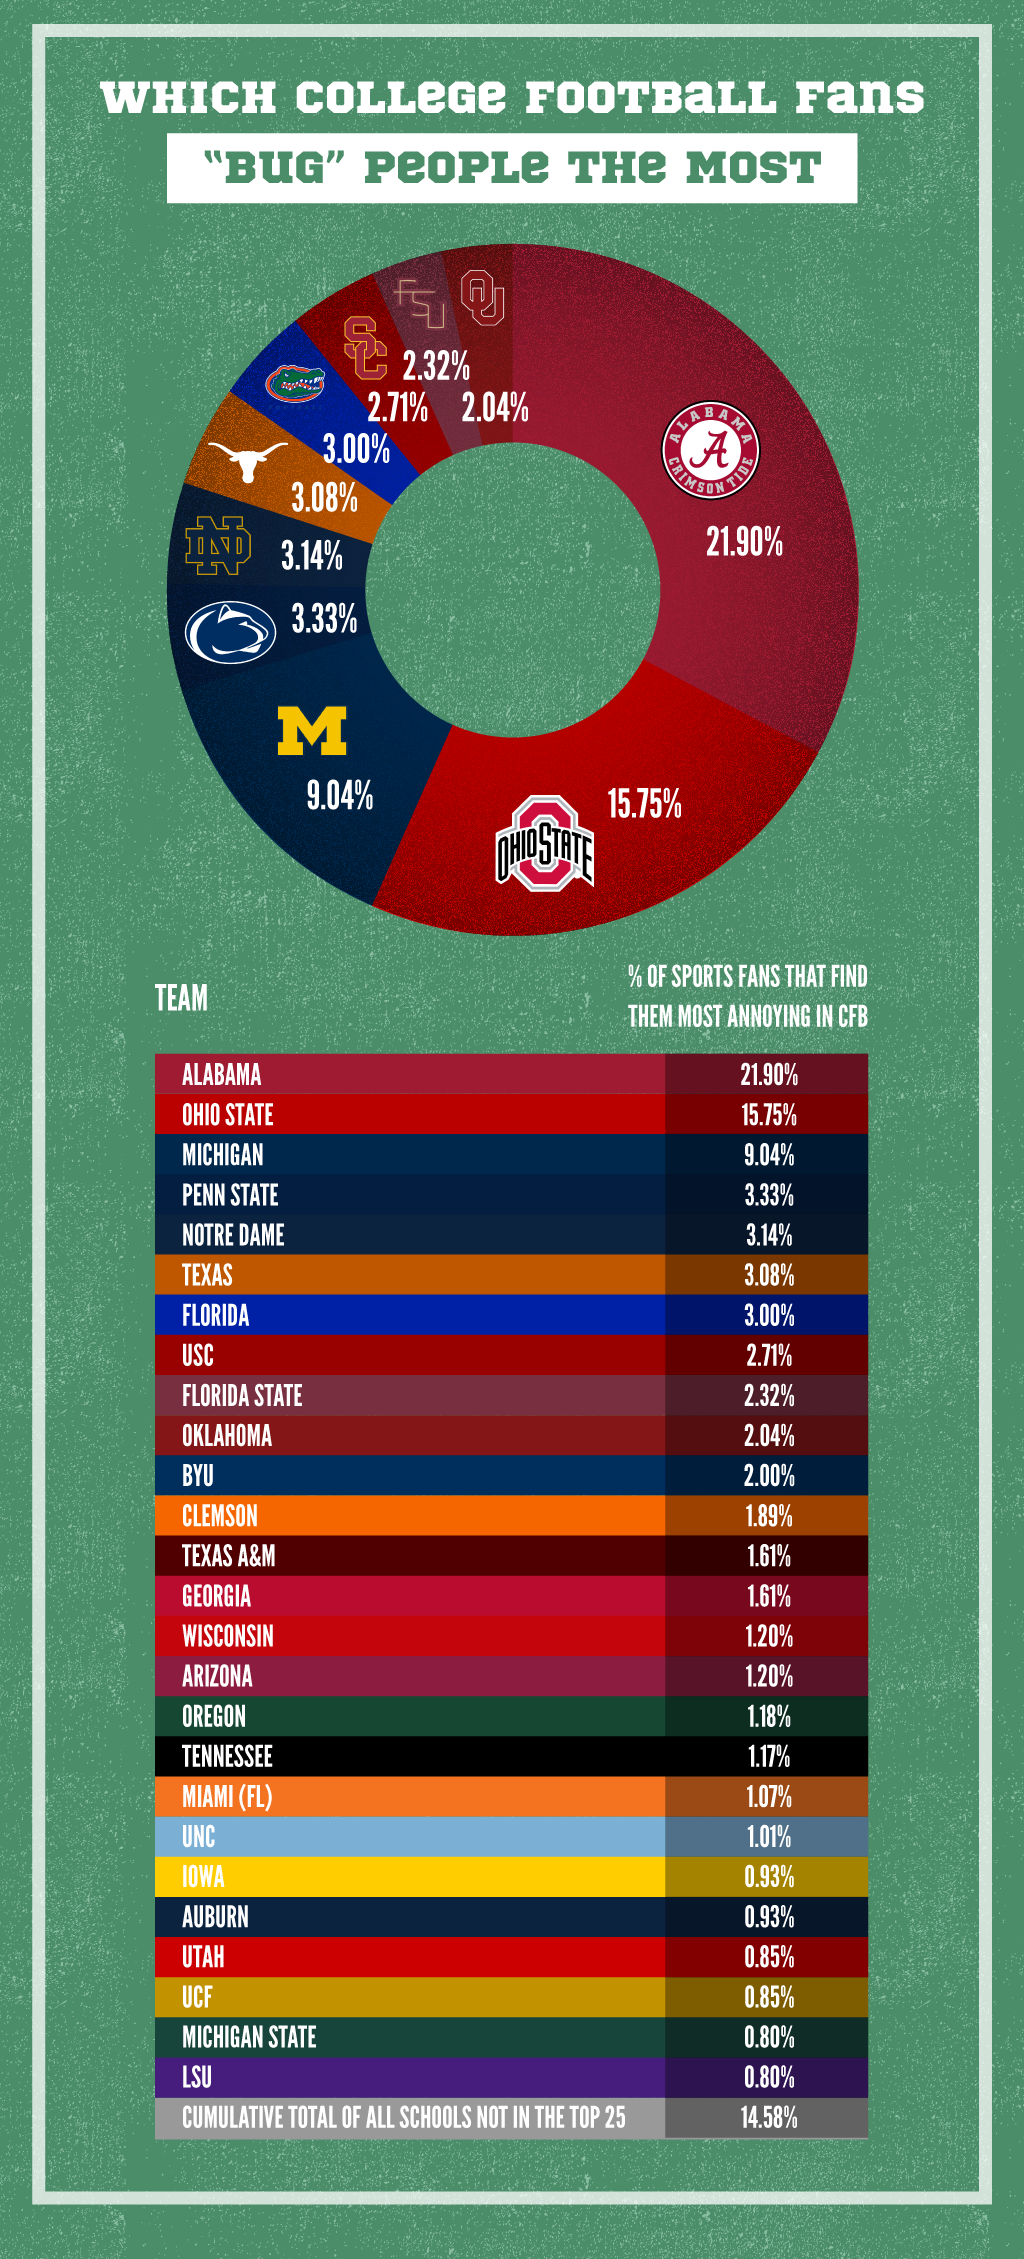 College Football Teams That Sports Fans Find Most Annoying